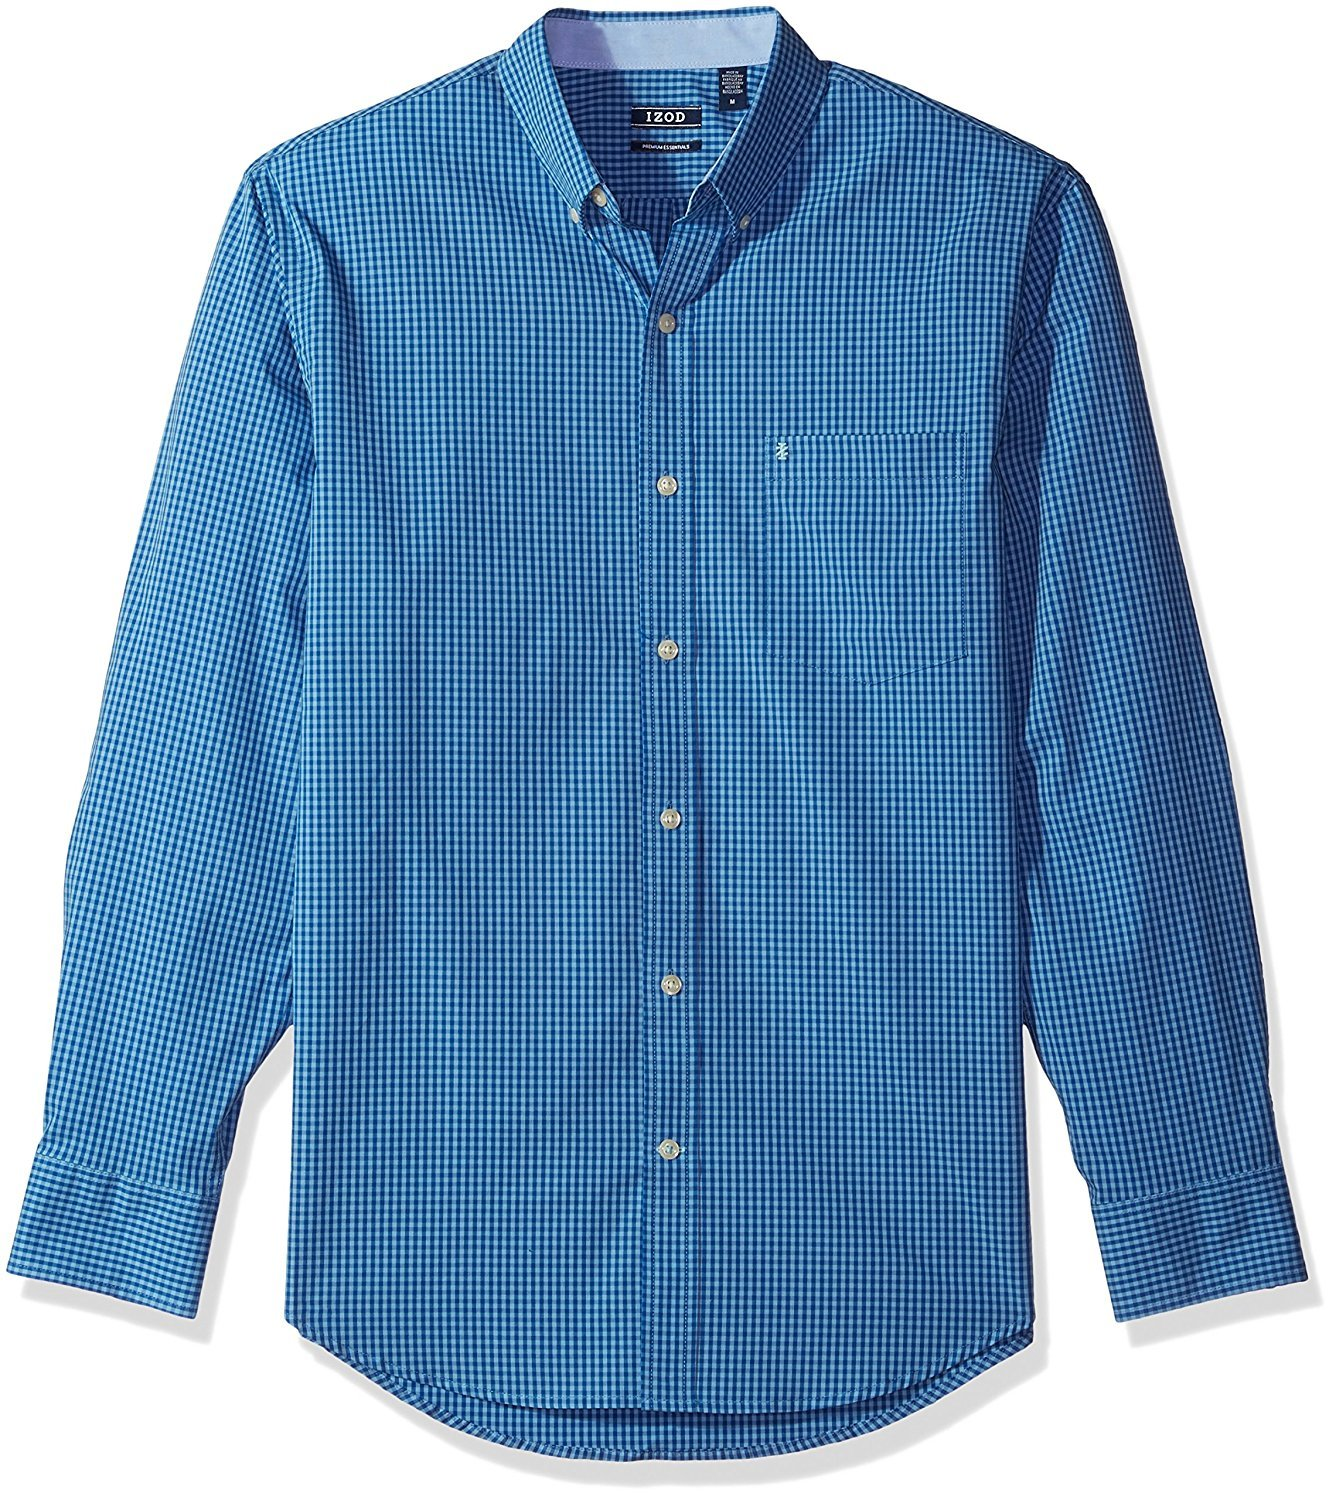 IZOD Men's Gingham Long Sleeve Shirt 82SW993